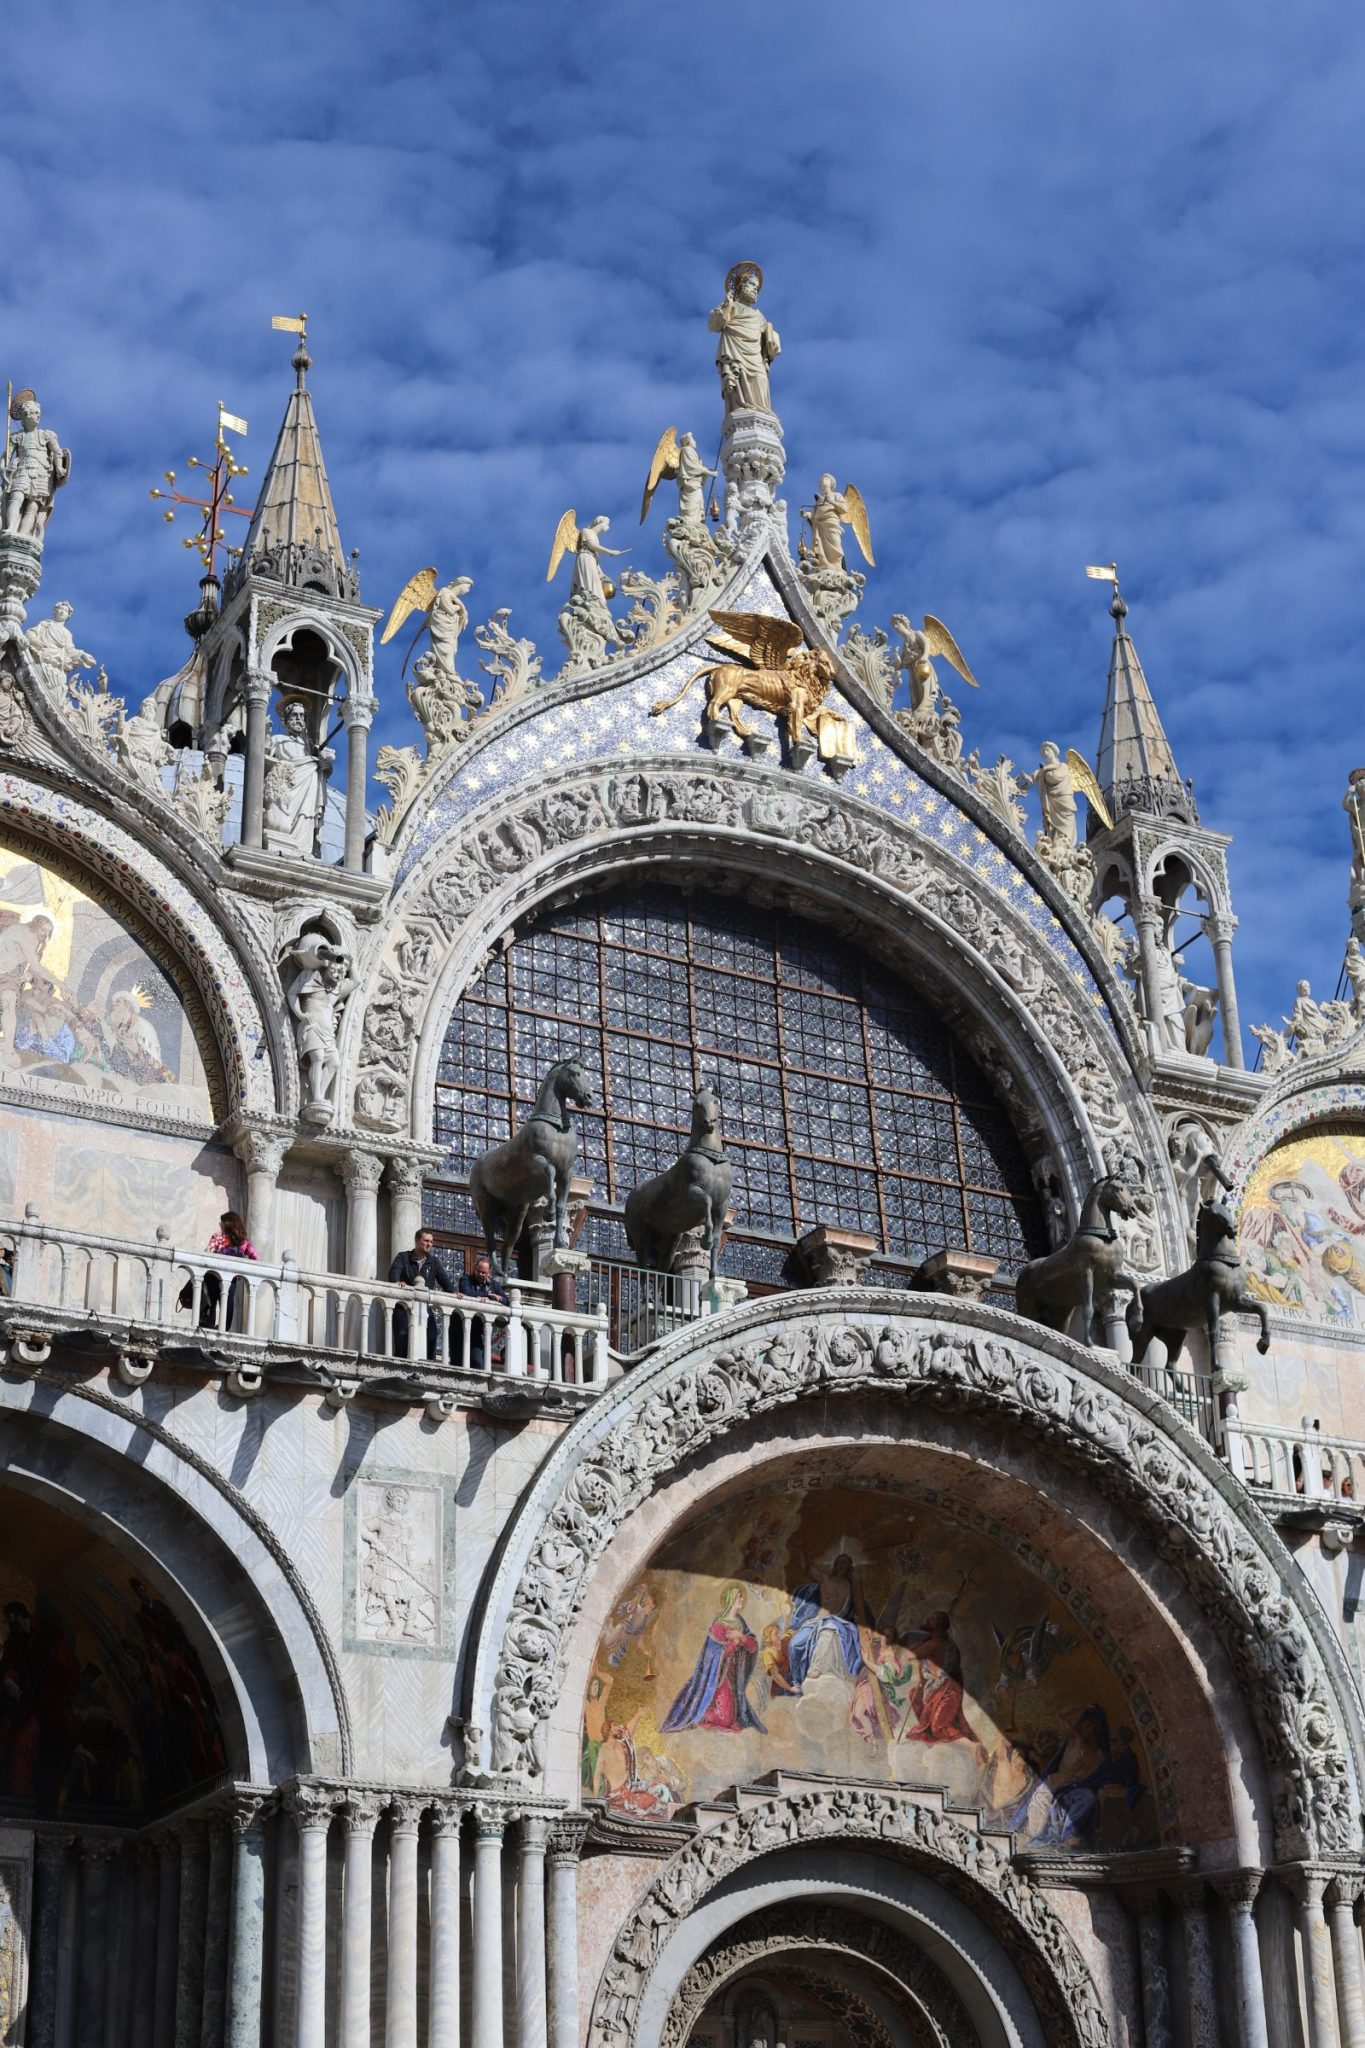 livitaly tours review, venice italy, venice tours, what to do in Venice, St. Mark's Basilica Venice, Support Venice, Lorenzo Quinn, Venice walking tour, Fondaco dei Tedeschi rooftop terrace, gondola ride venice, what to wear in venice, venice in September